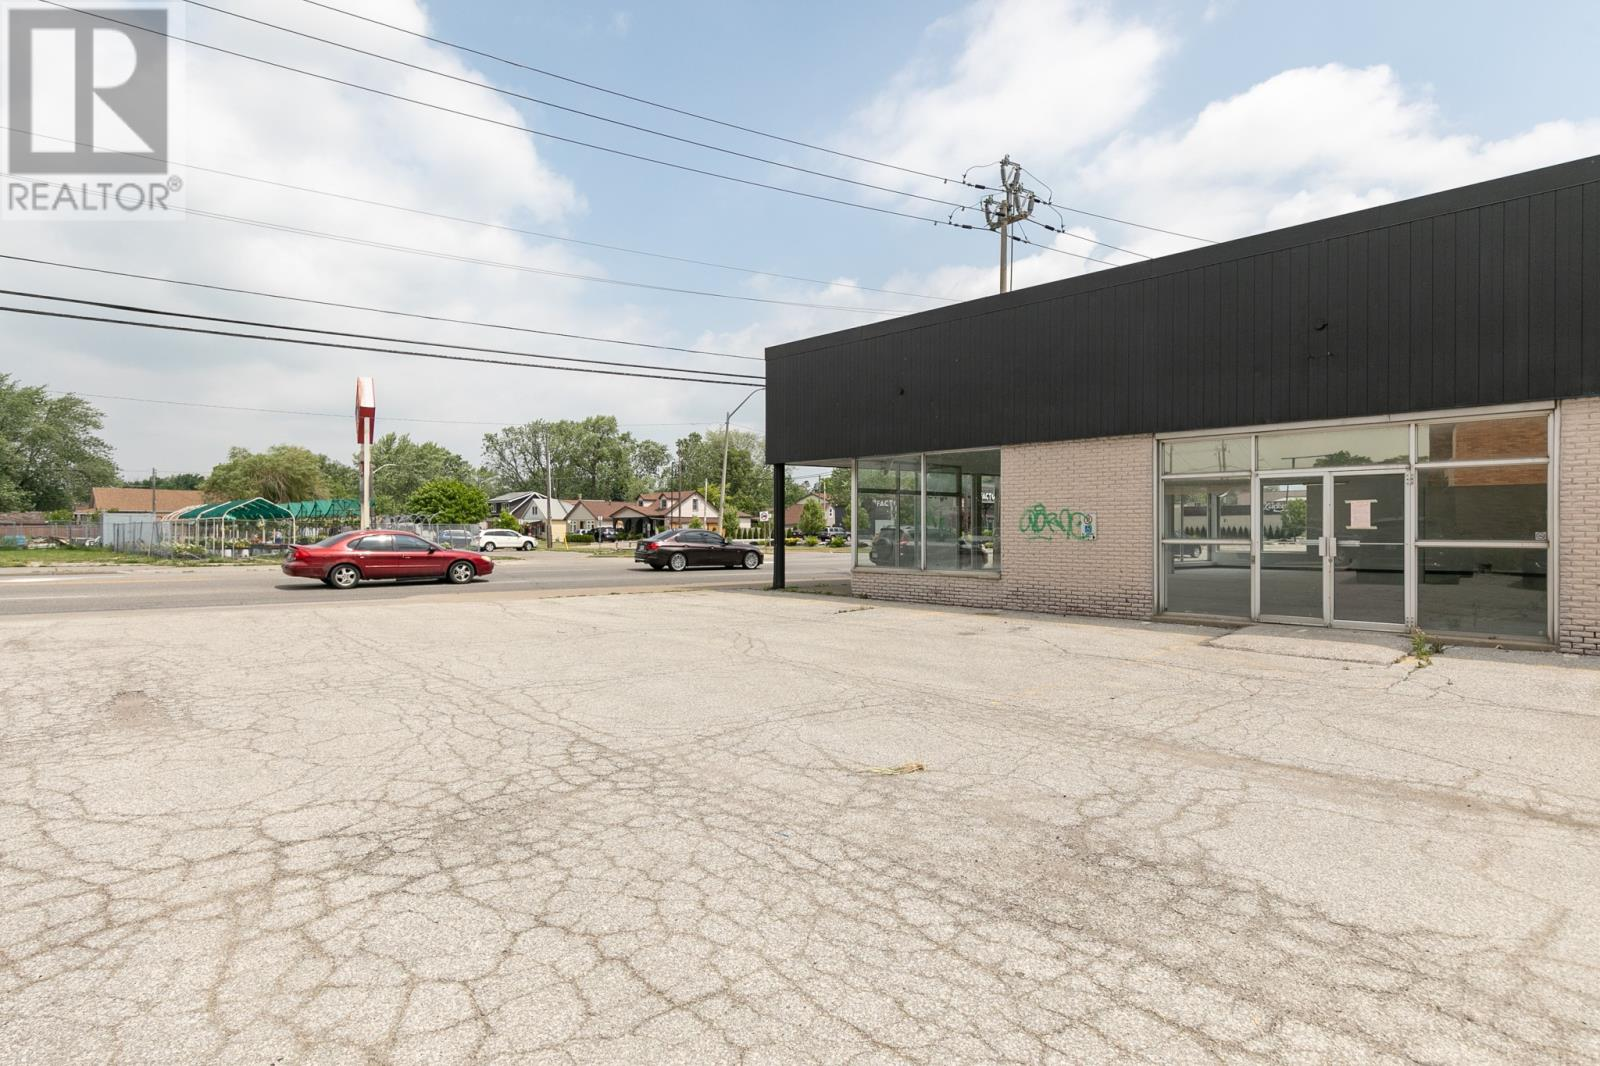 Image nr 4 for listing 5189 TECUMSEH, Windsor